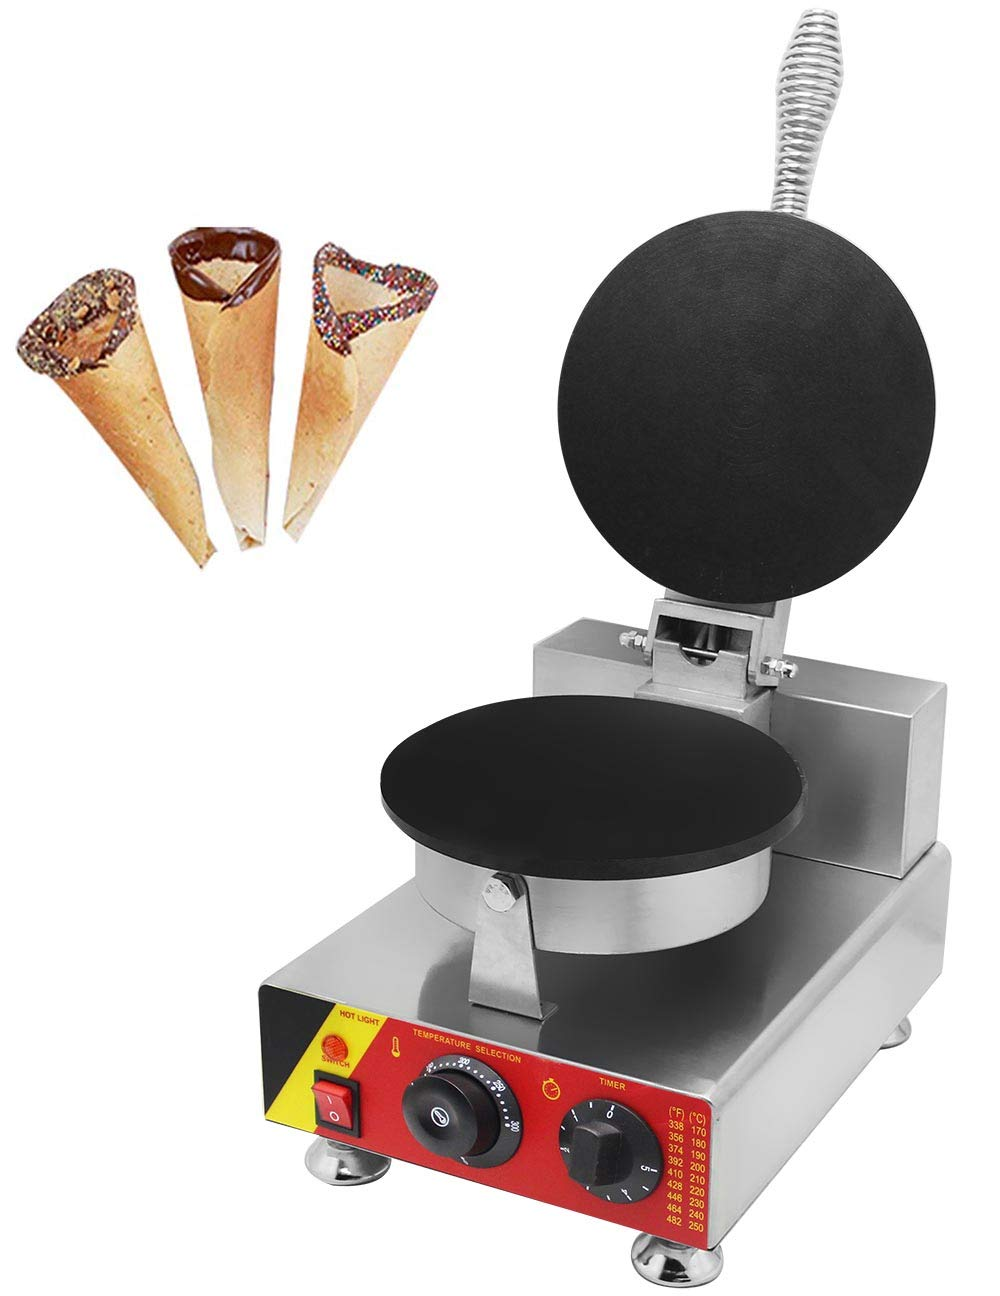 CGOLDENWALL NP-692 Commercial Ice Cream Cone Maker Non-stick Egg Roll Machine Egg Crepes Waffle Making Machine Egg-biscuit-roll Baker (110V)